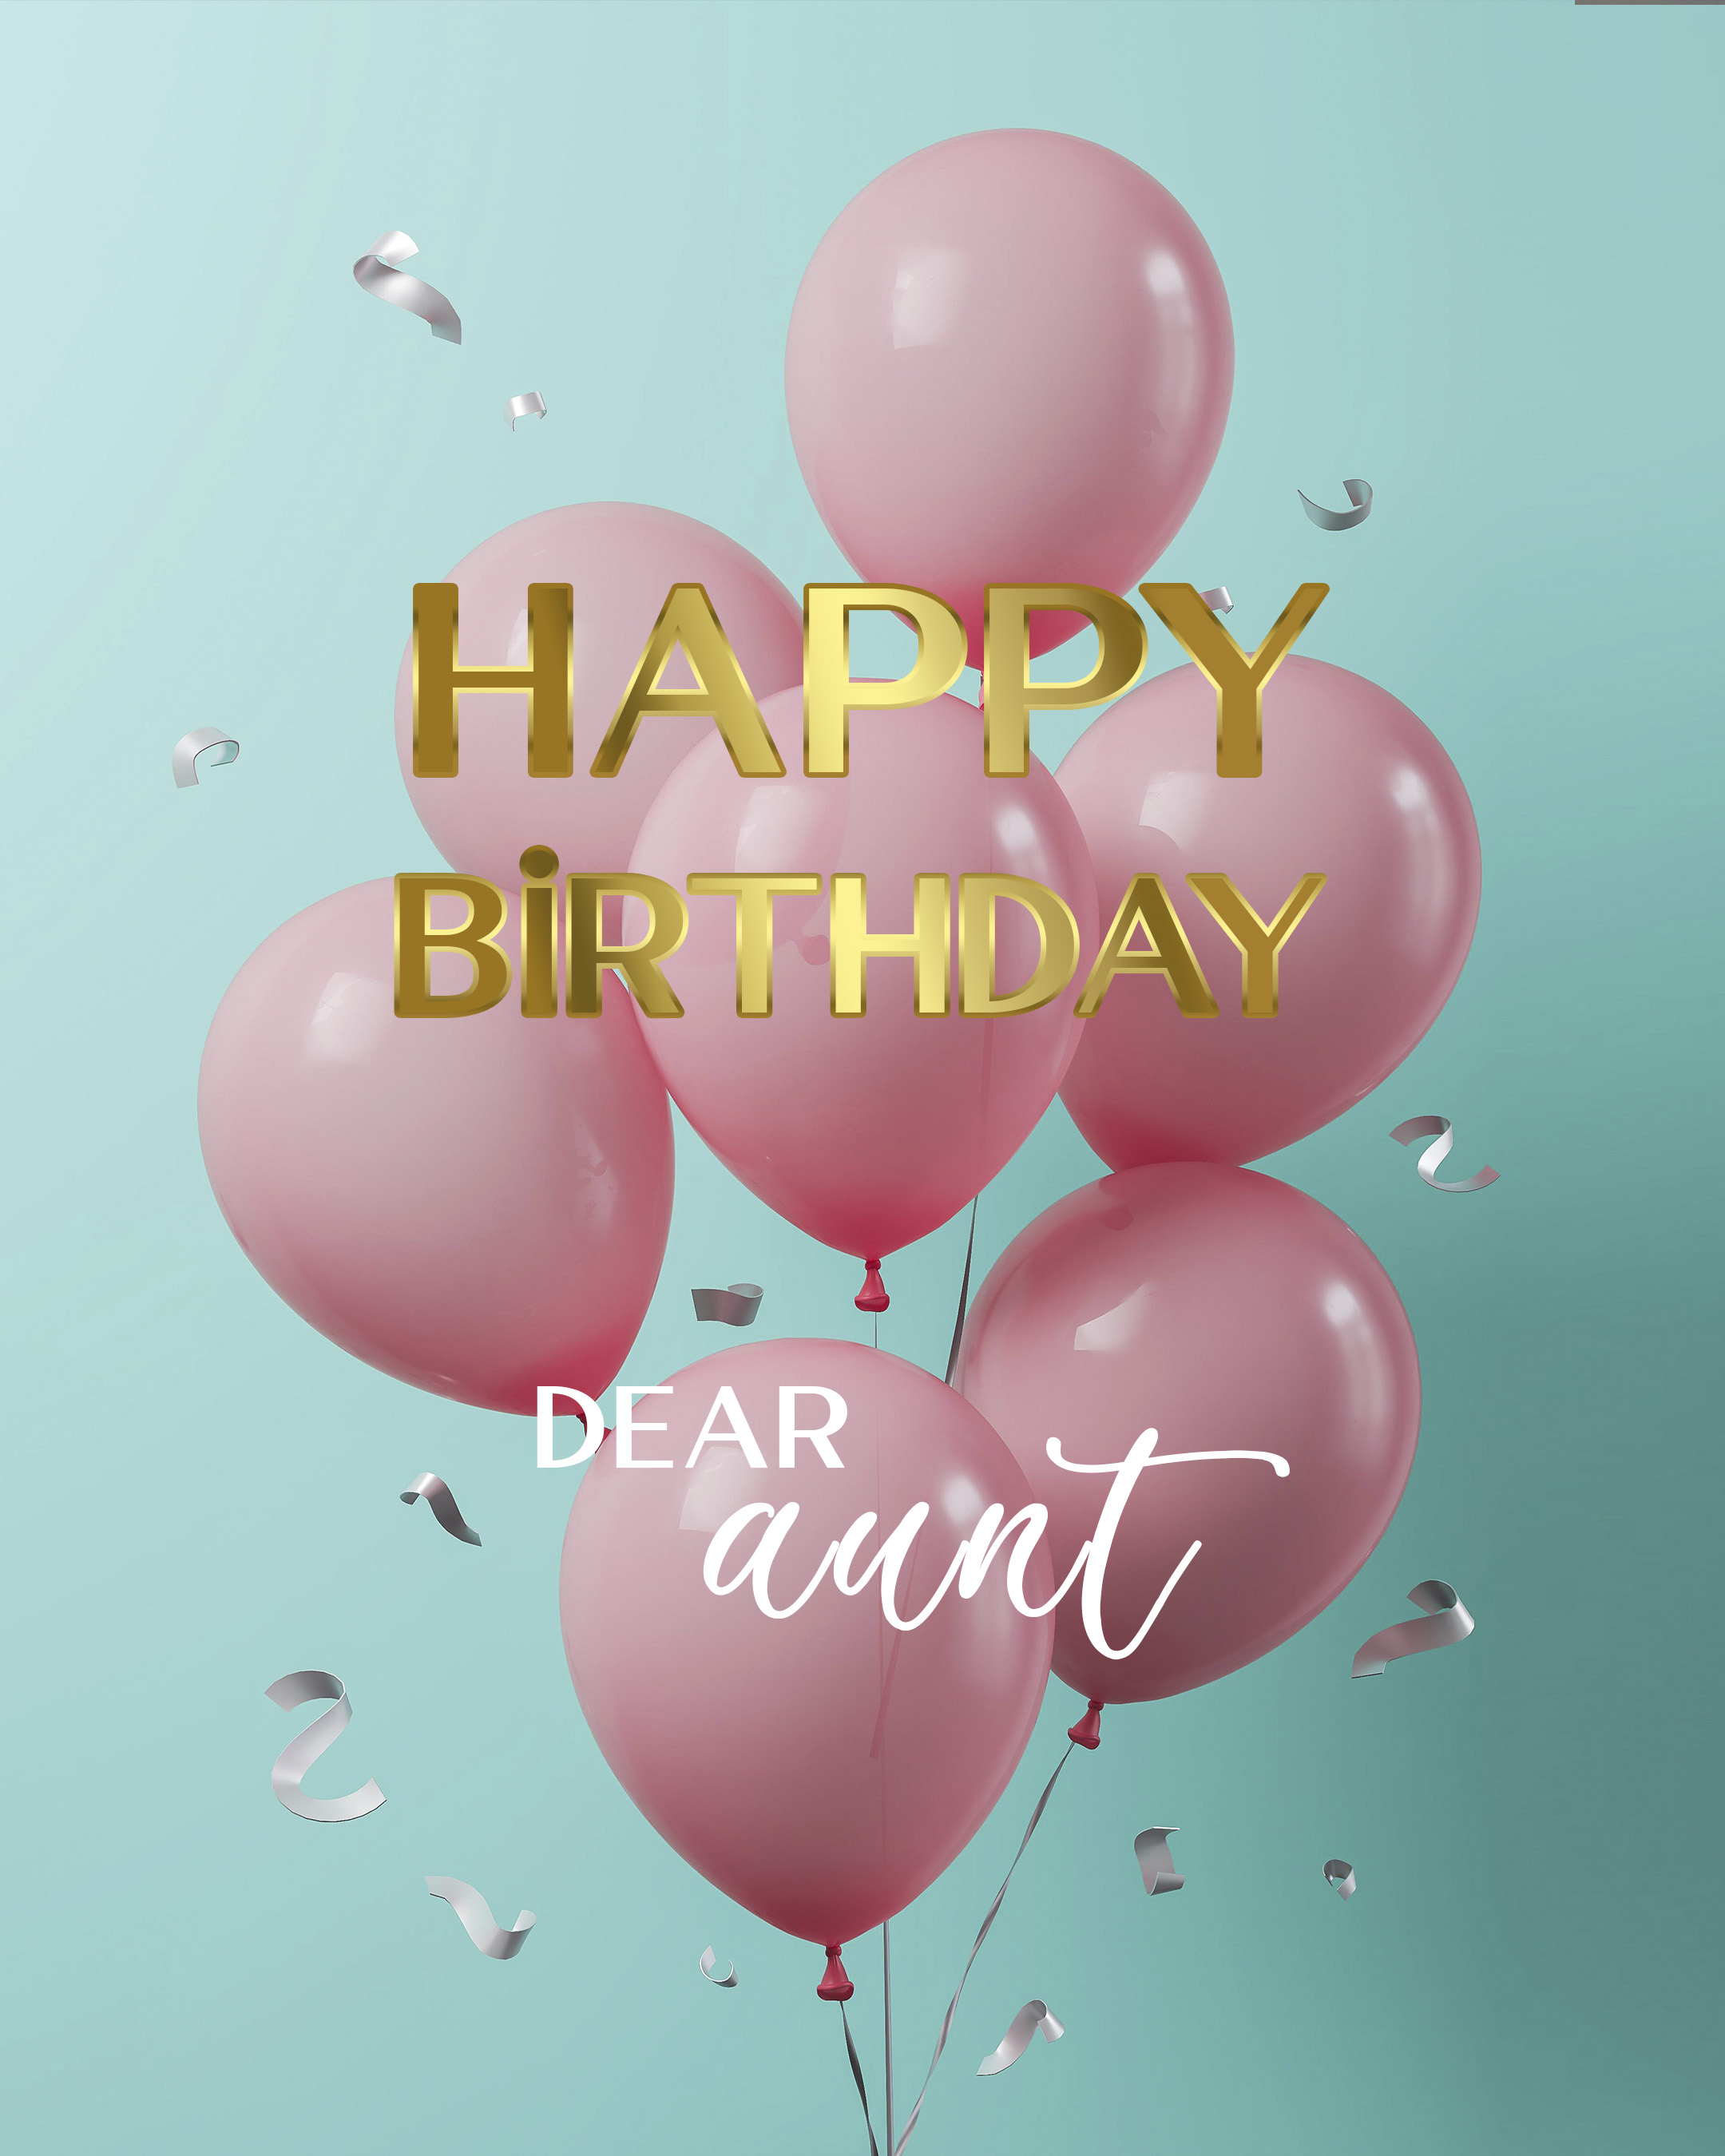 Free Happy Birthday Image For Aunt With Balloons - birthdayimg.com